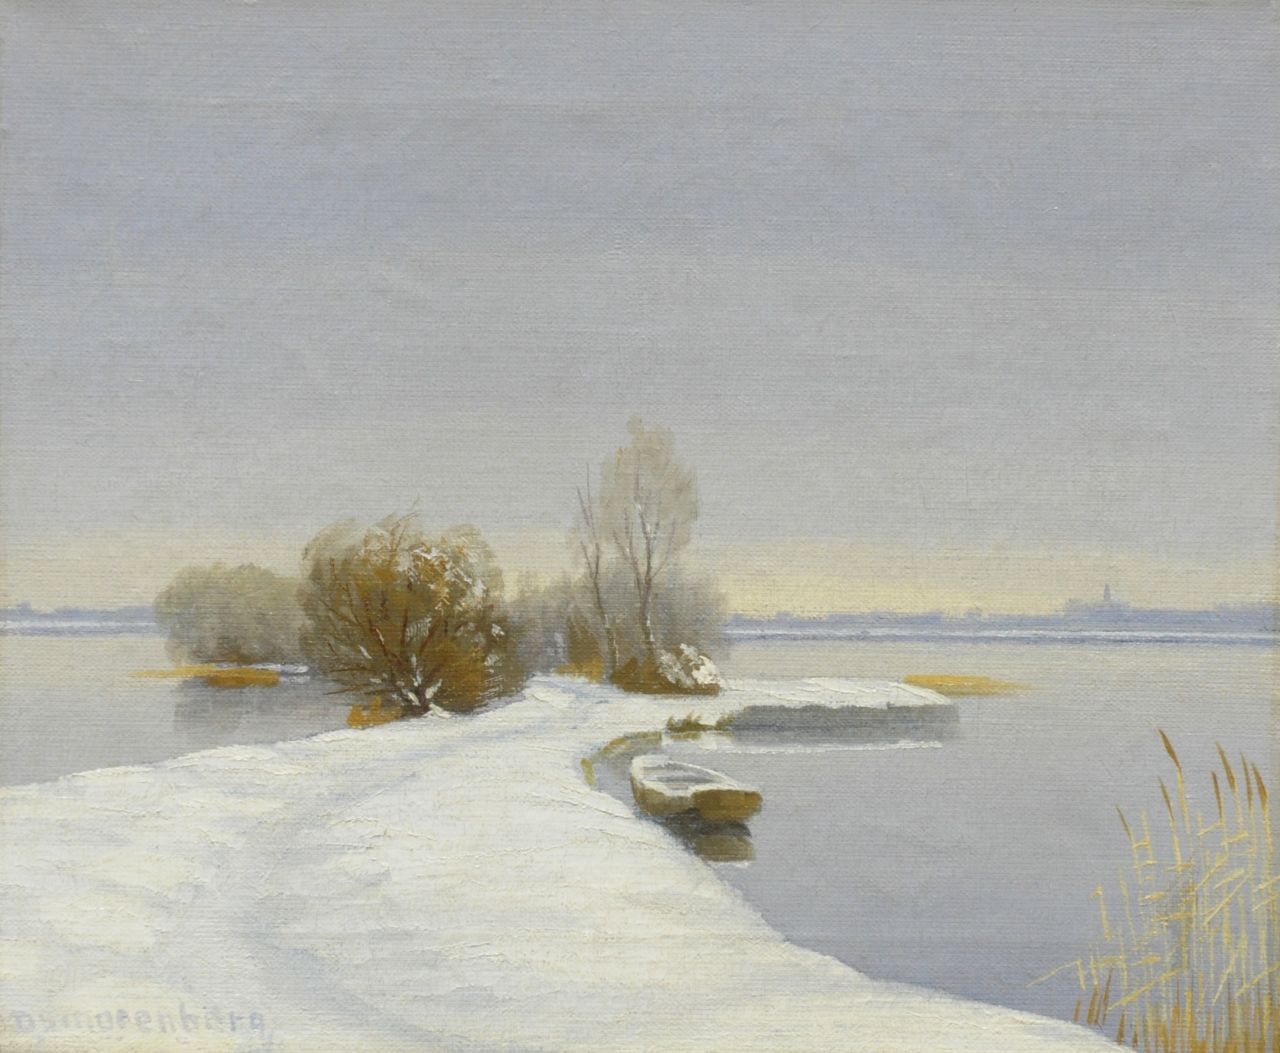 Smorenberg D.  | Dirk Smorenberg, A winter landscape near Loosdrecht, oil on canvas 25.2 x 30.0 cm, signed l.l.